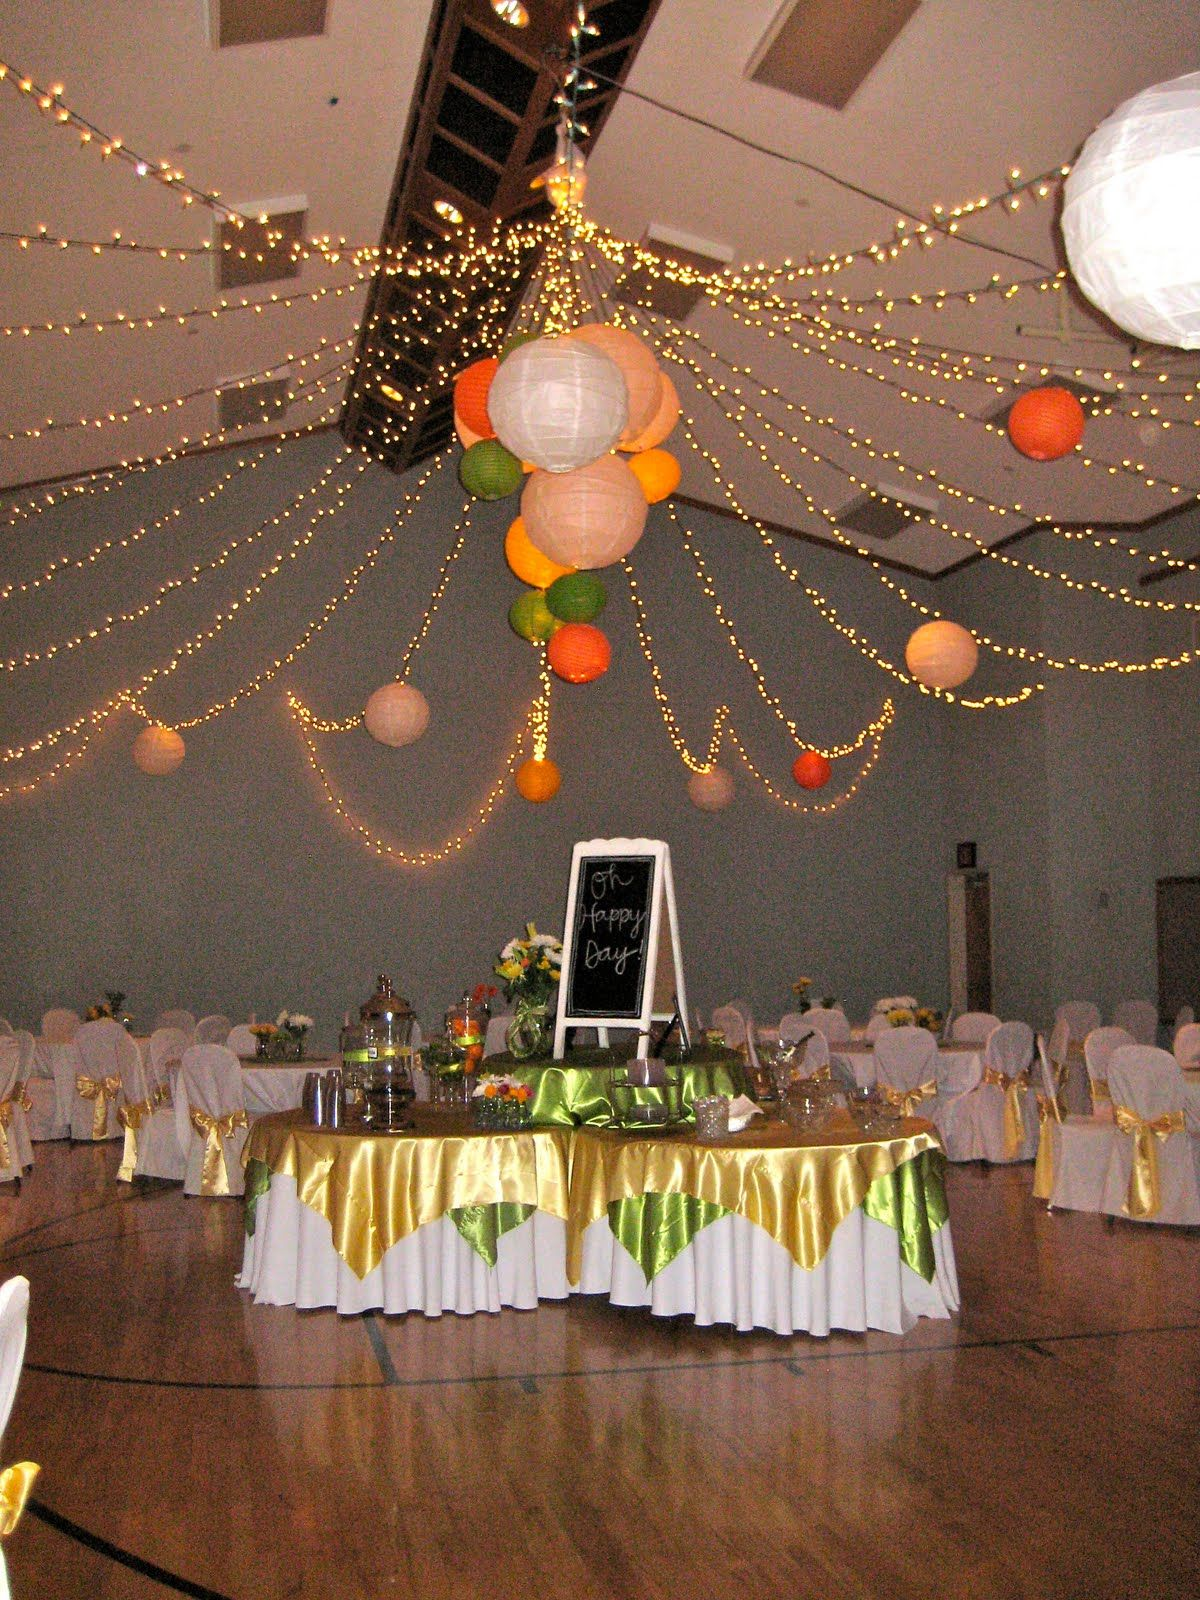 Ceiling Of Lights With Paper Lanterns Transforms The